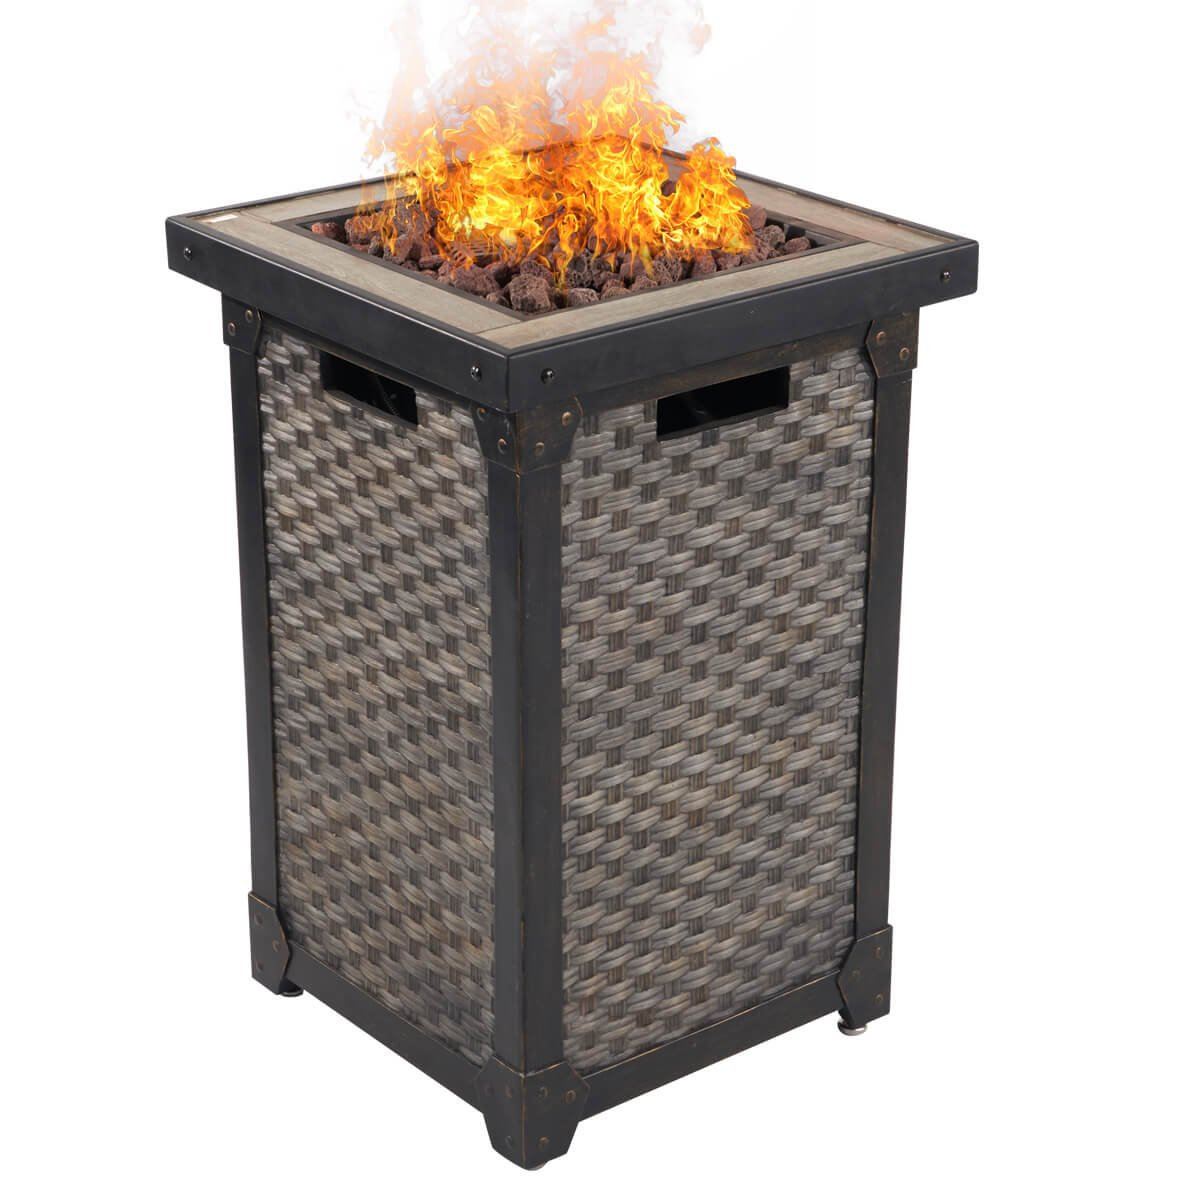 "Dian 29"" Outdoor Patio Gas Fire Pit Wicker Propane Gas Fire Table with Lava Rocks 30,000 BTU Auto Ignition with Safety Push Button HE9995"